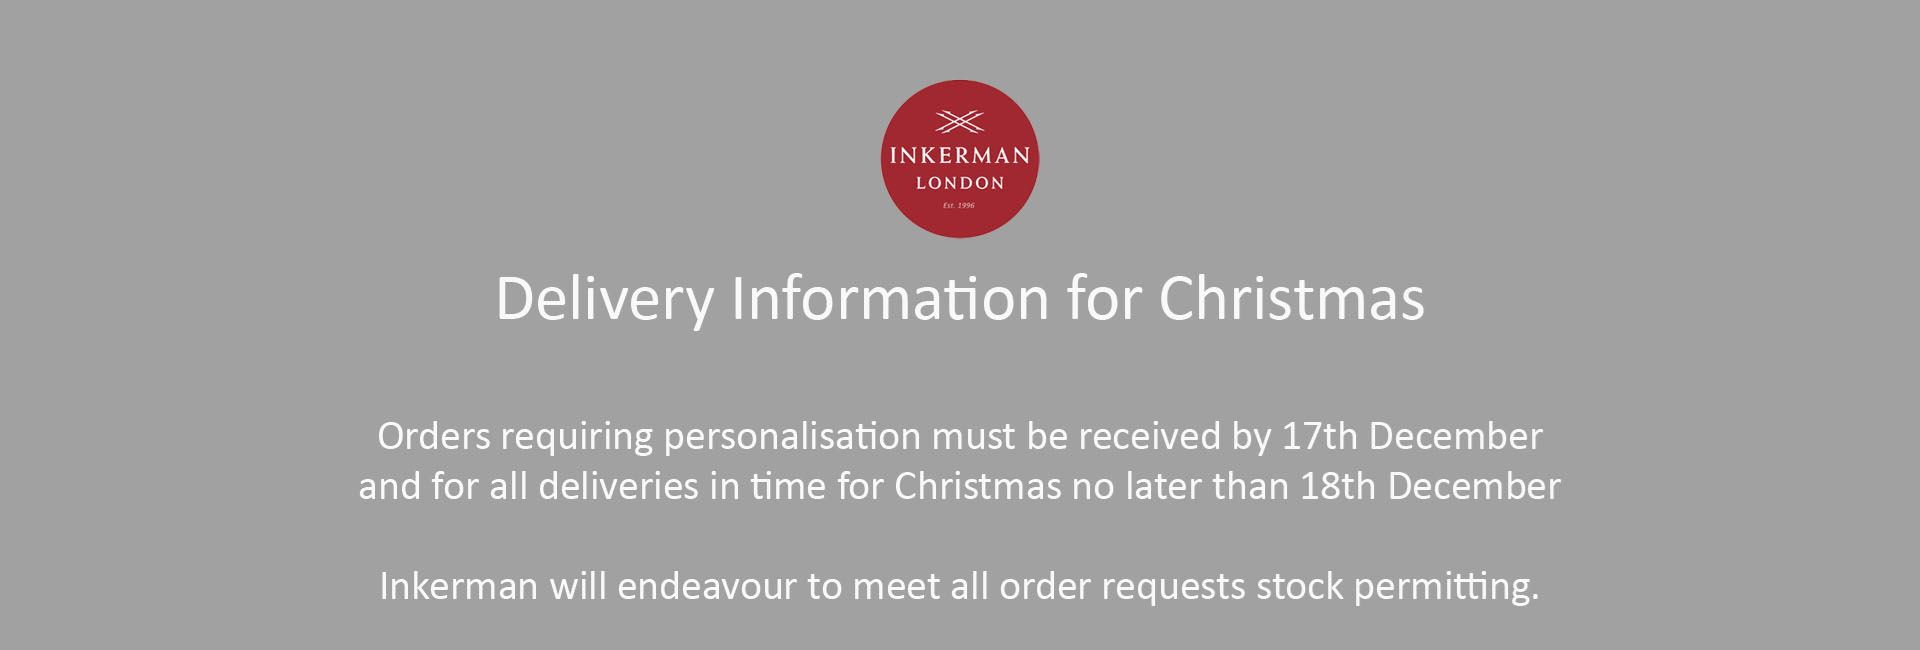 Delivery Information for Christmas